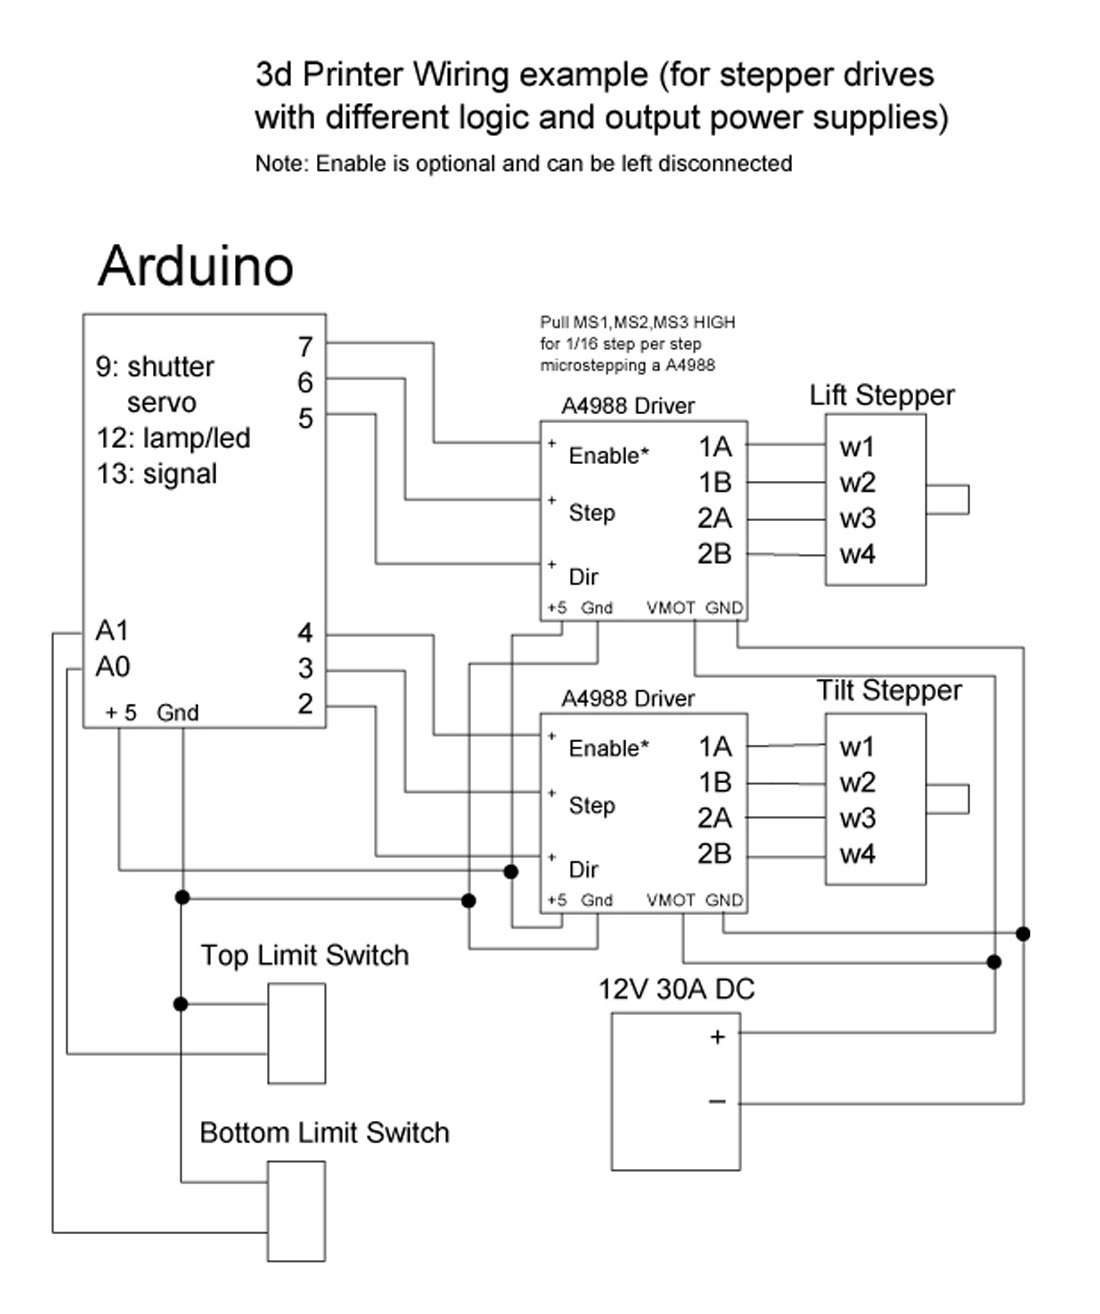 wiring diagram sidewinder 1 A4988 3d printer rebuild, software and electronics projects, interests Open Close Limit Switch Wiring Diagram at bayanpartner.co